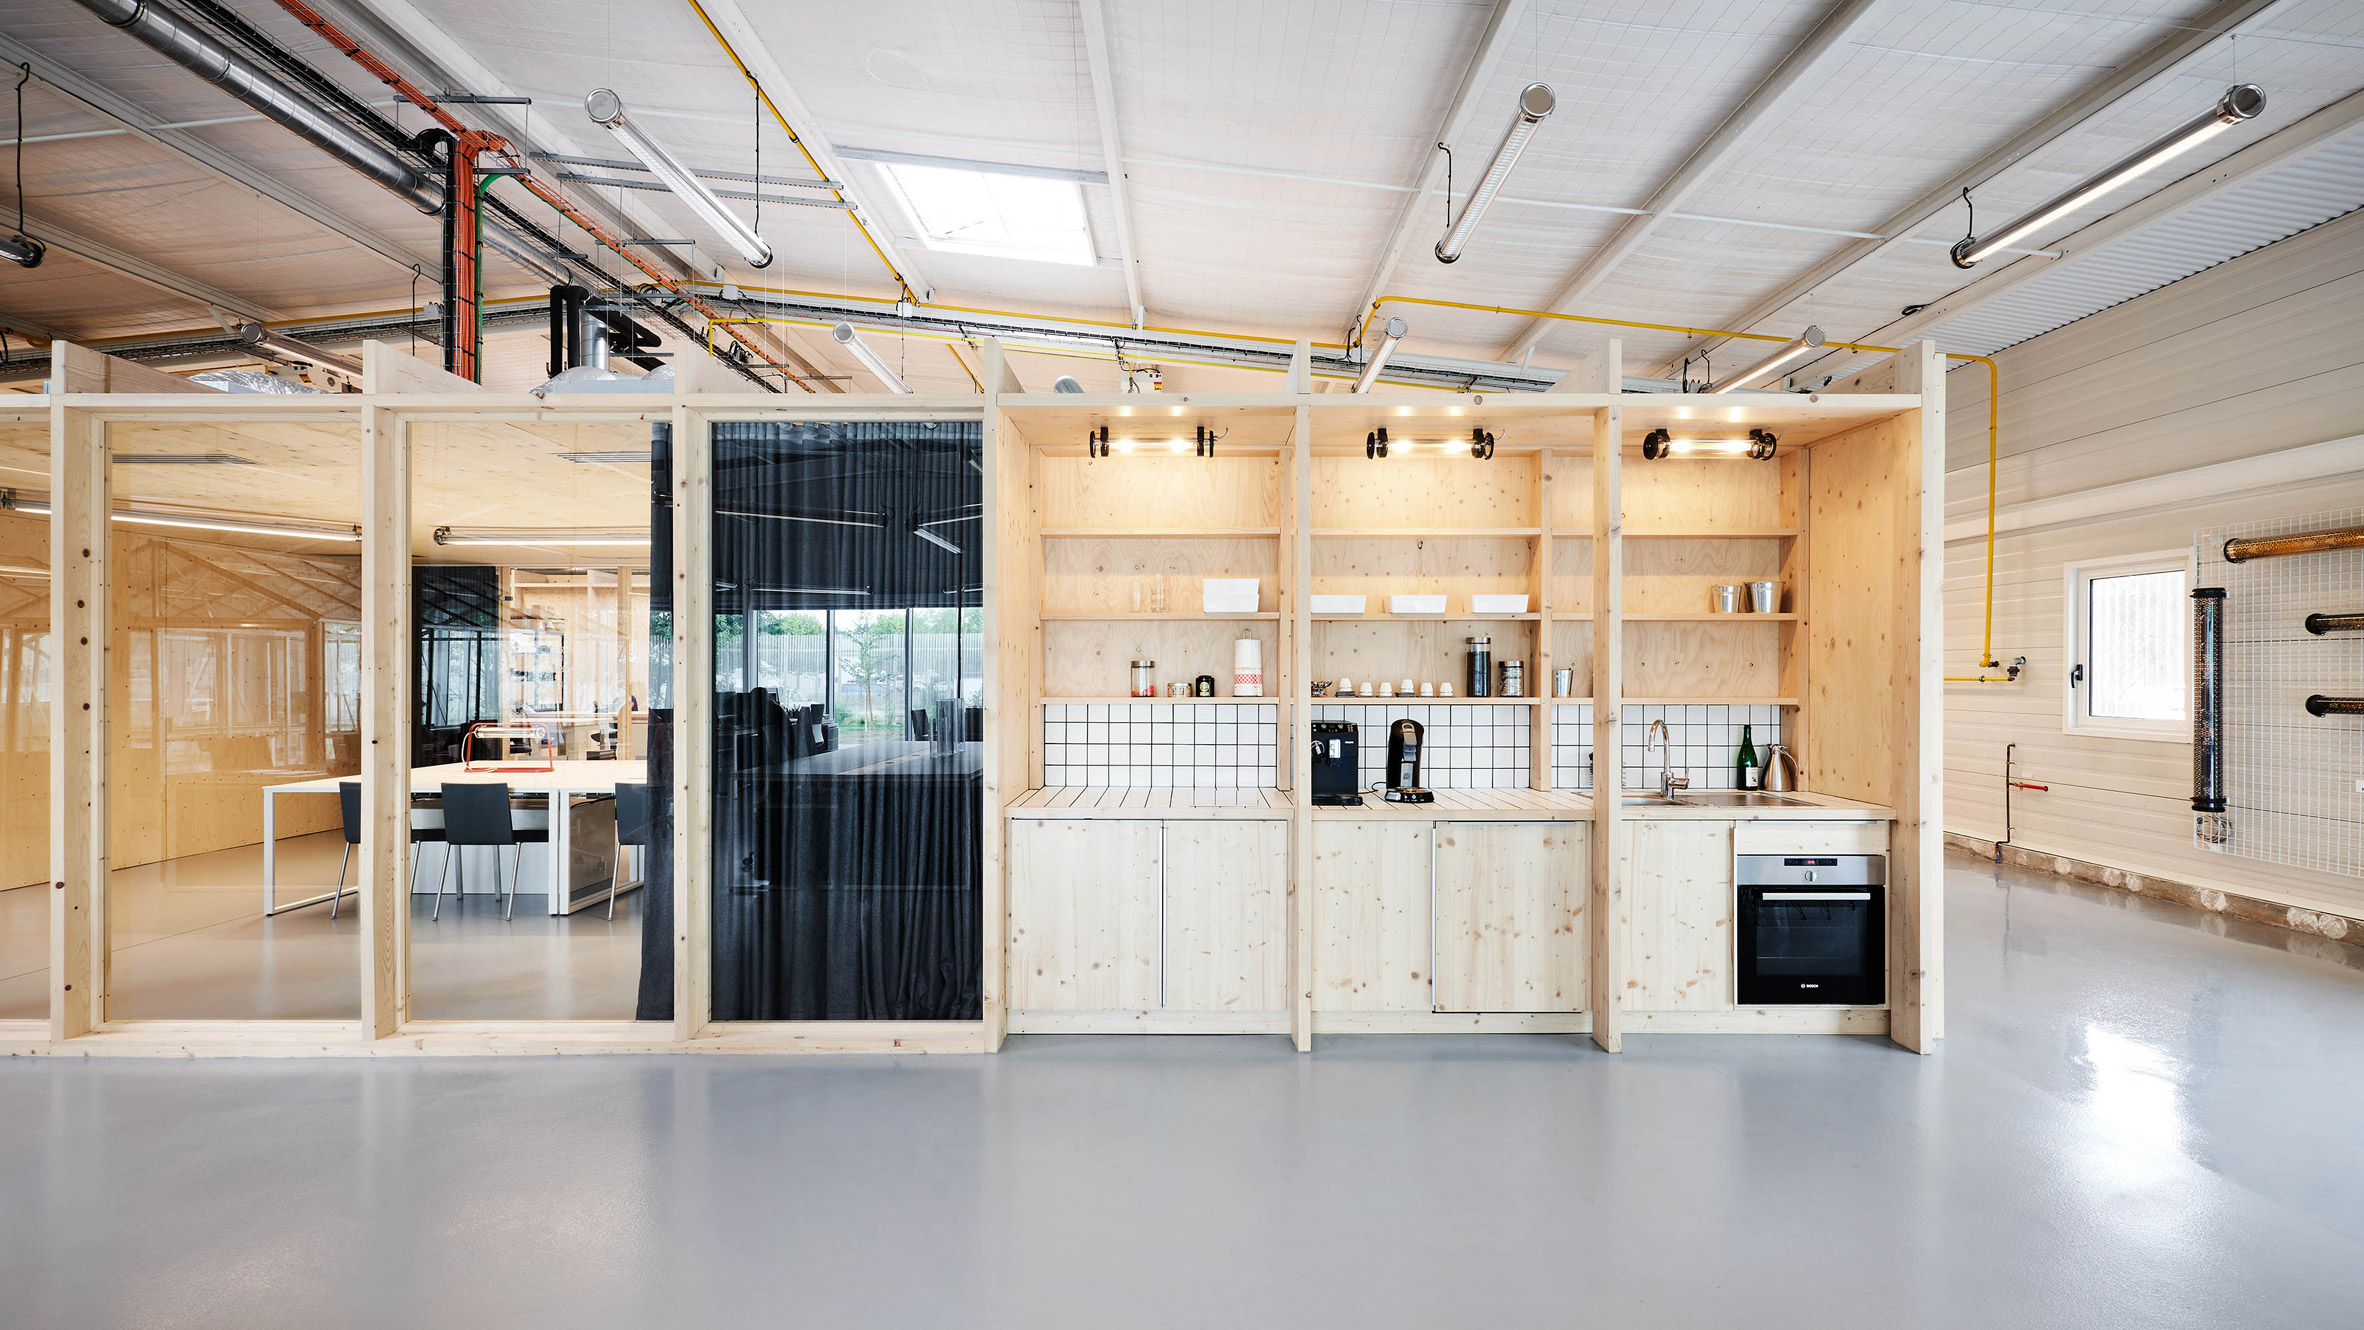 Sammode warehouse conversion by Freaks